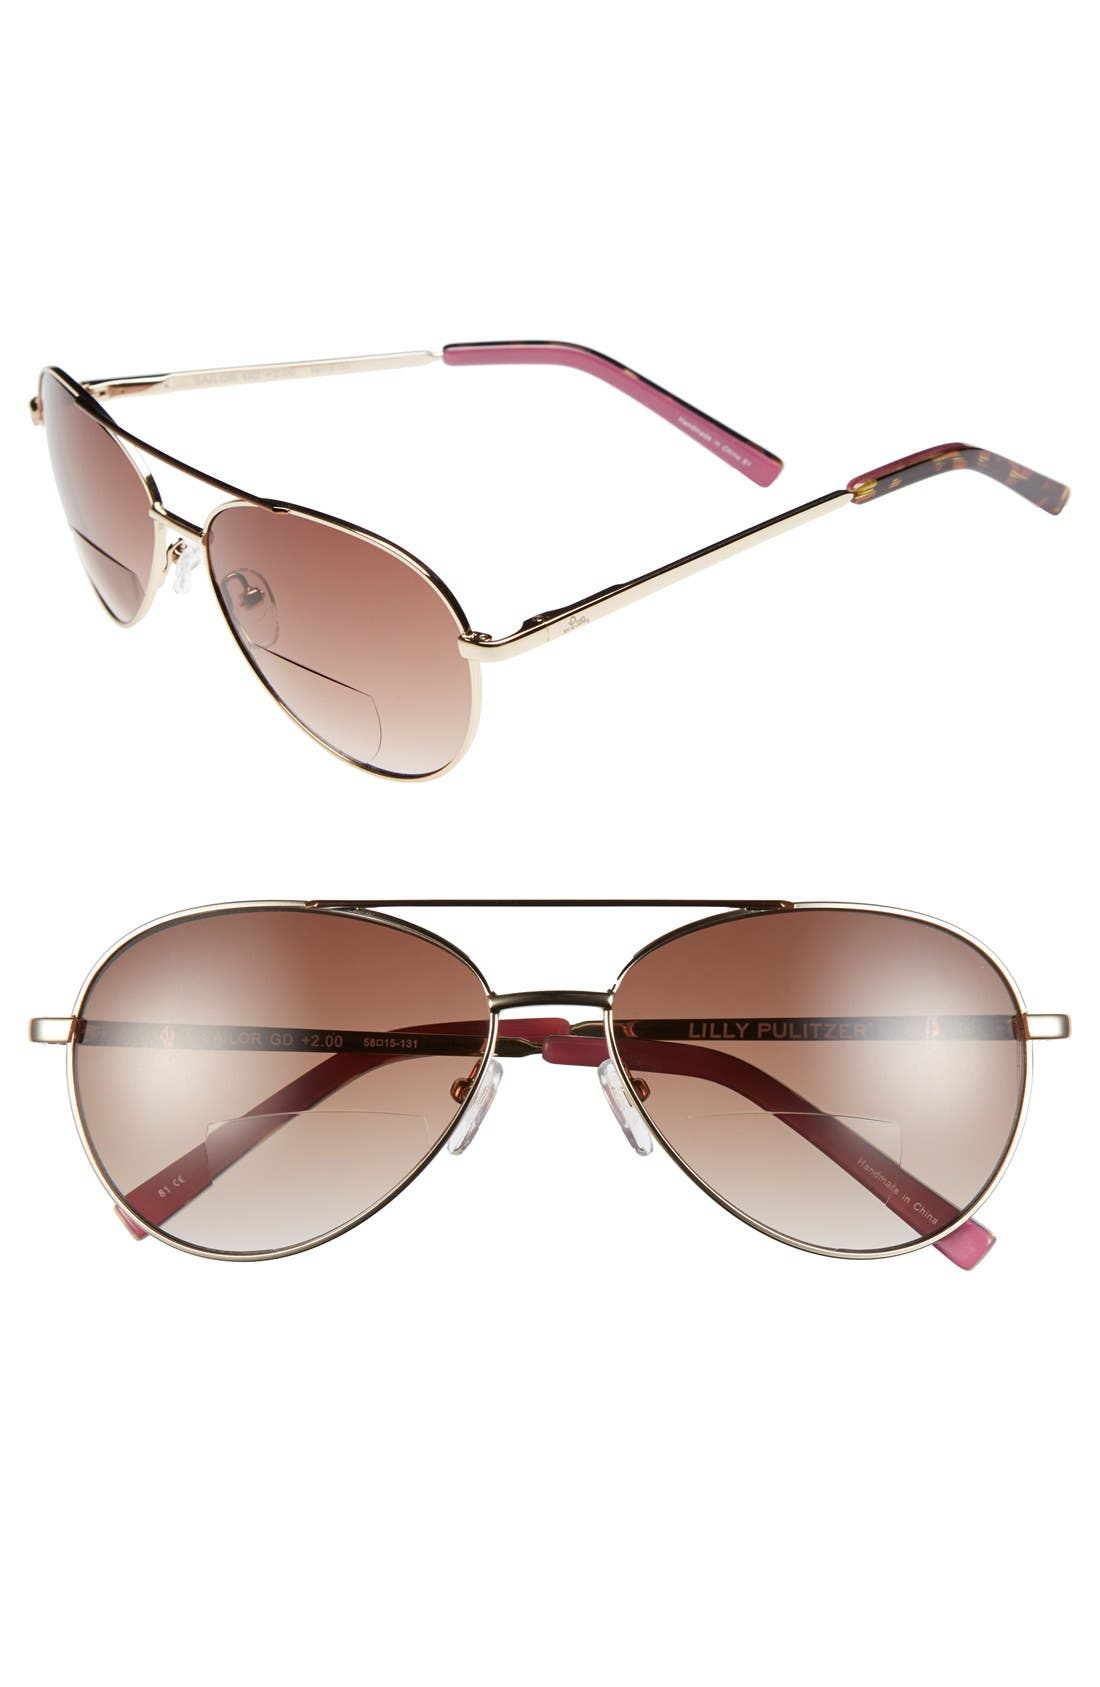 Main Image - Lilly Pulitzer® 'Sailor' 58mm Aviator Reading Sunglasses